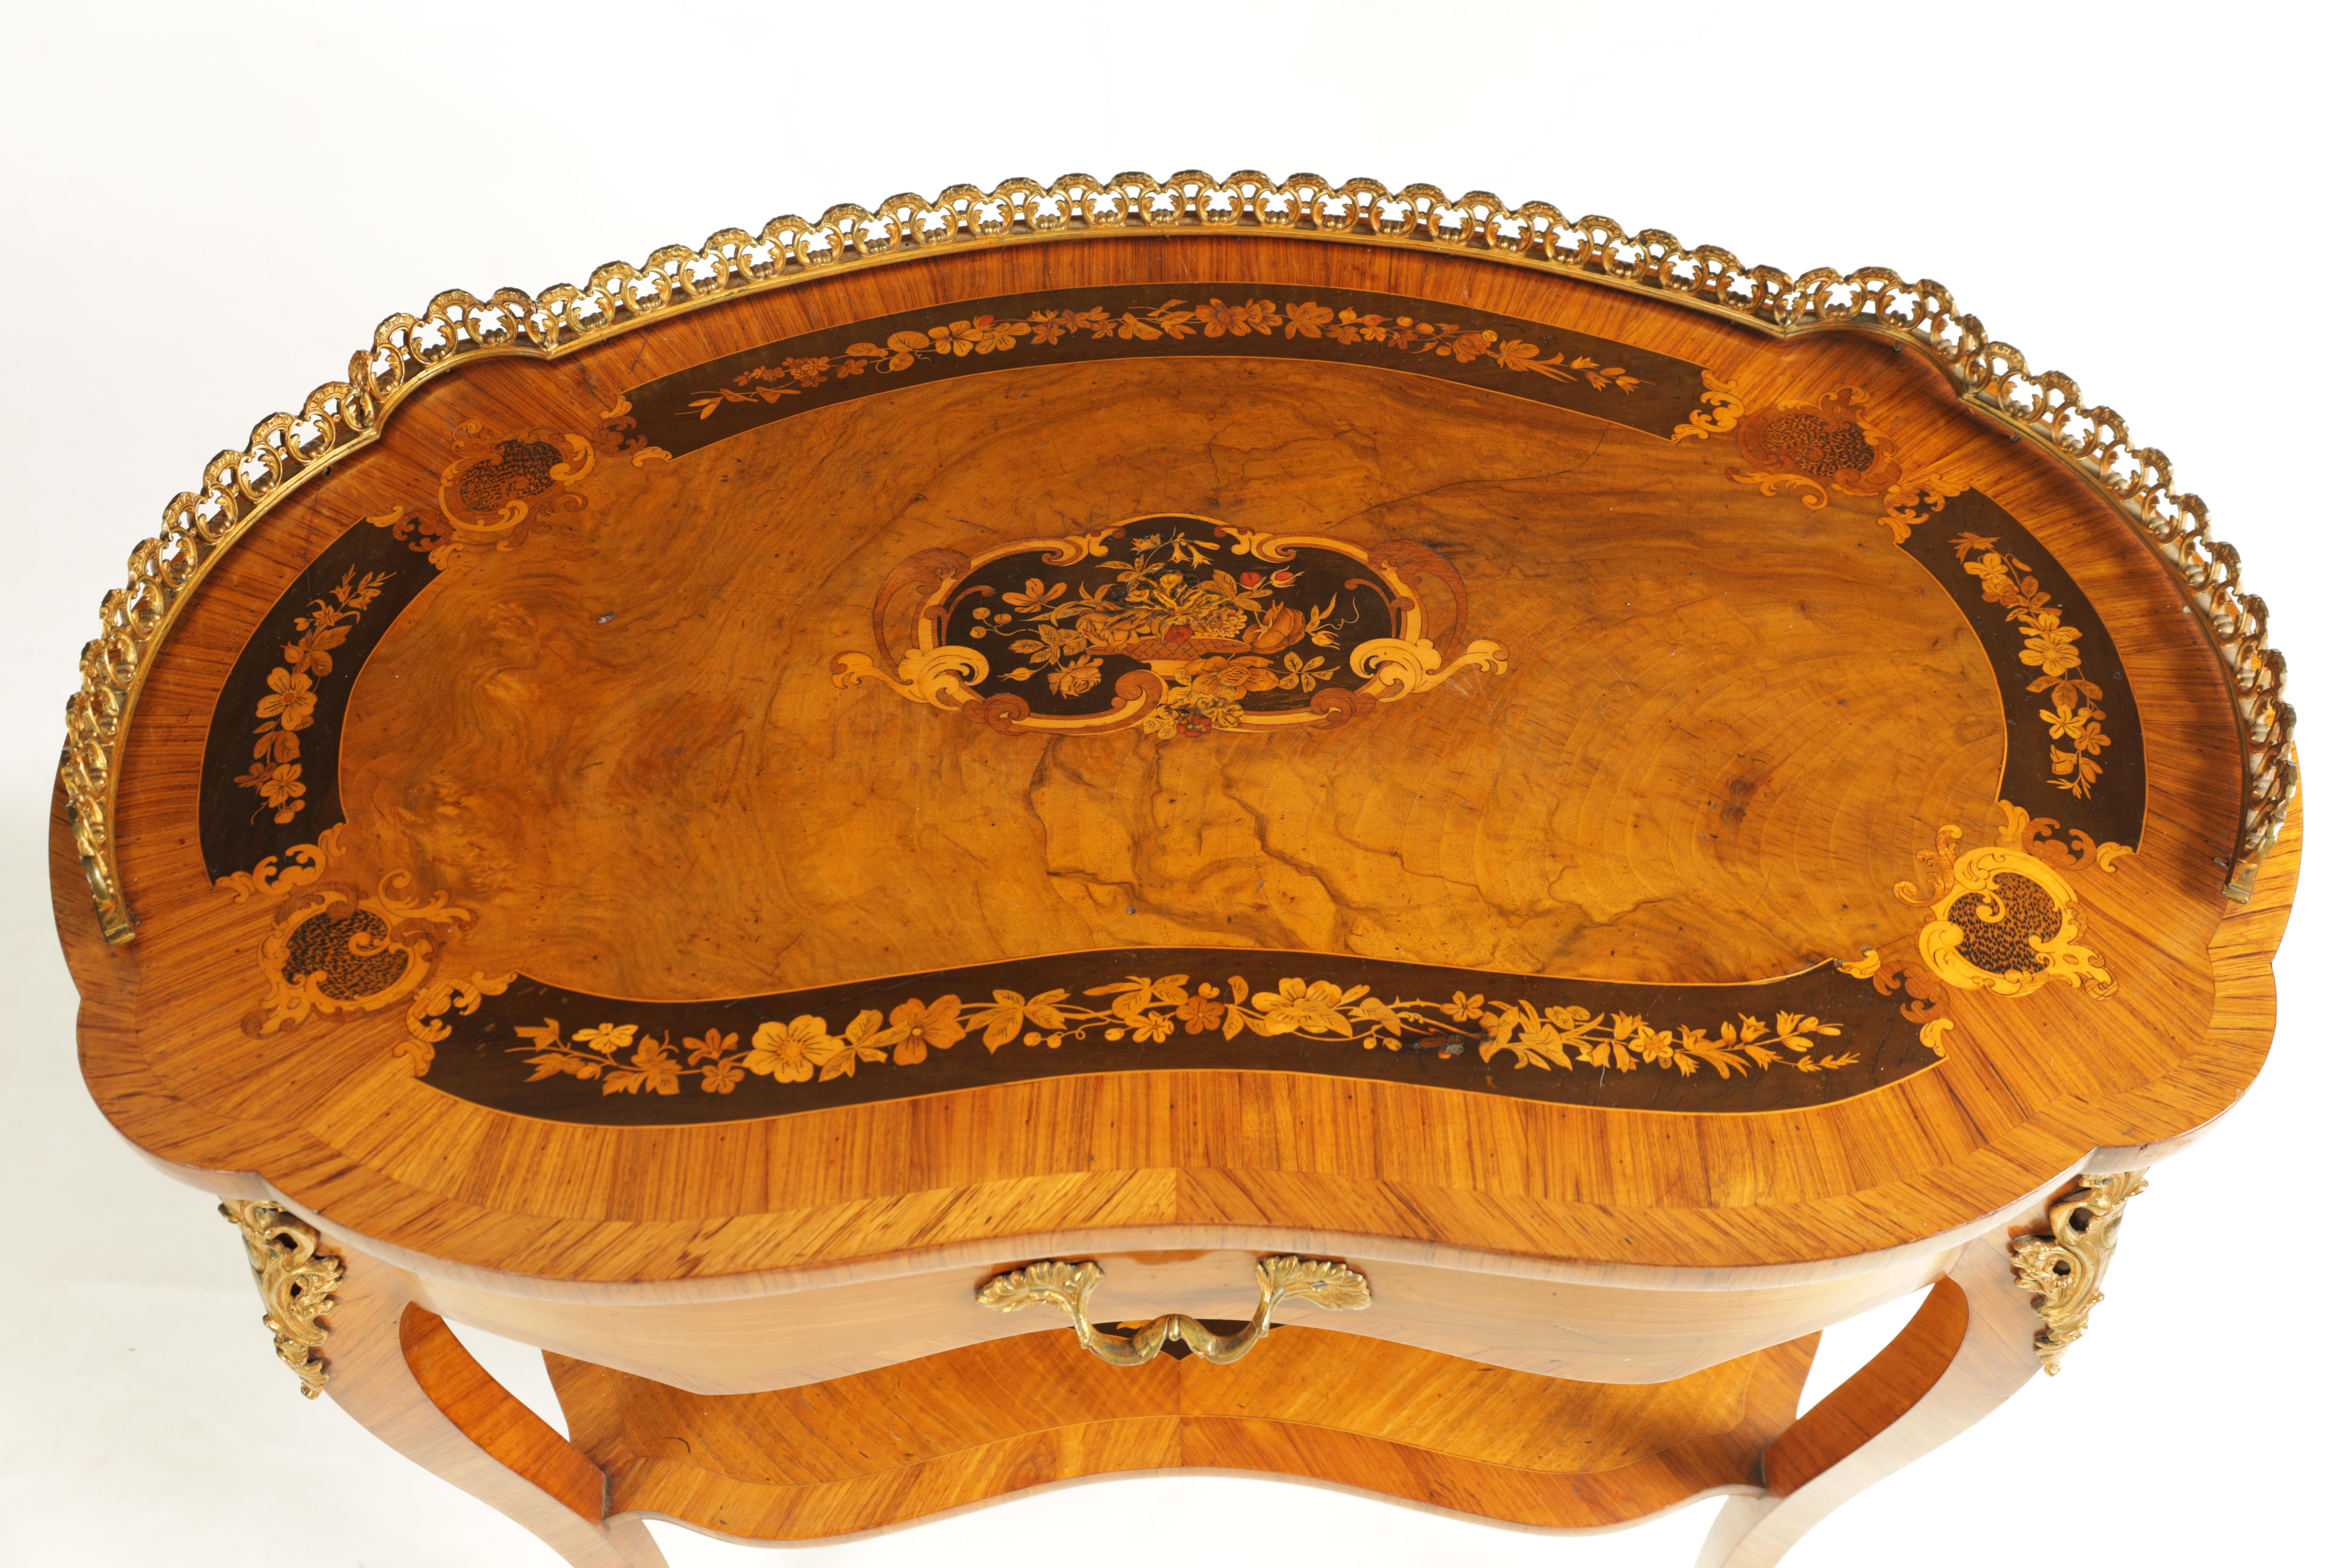 A FINE 19TH CENTURY MARQUETRY INLAID WALNUT KIDNEY SHAPED WRITING TABLE with raised brass - Image 6 of 10